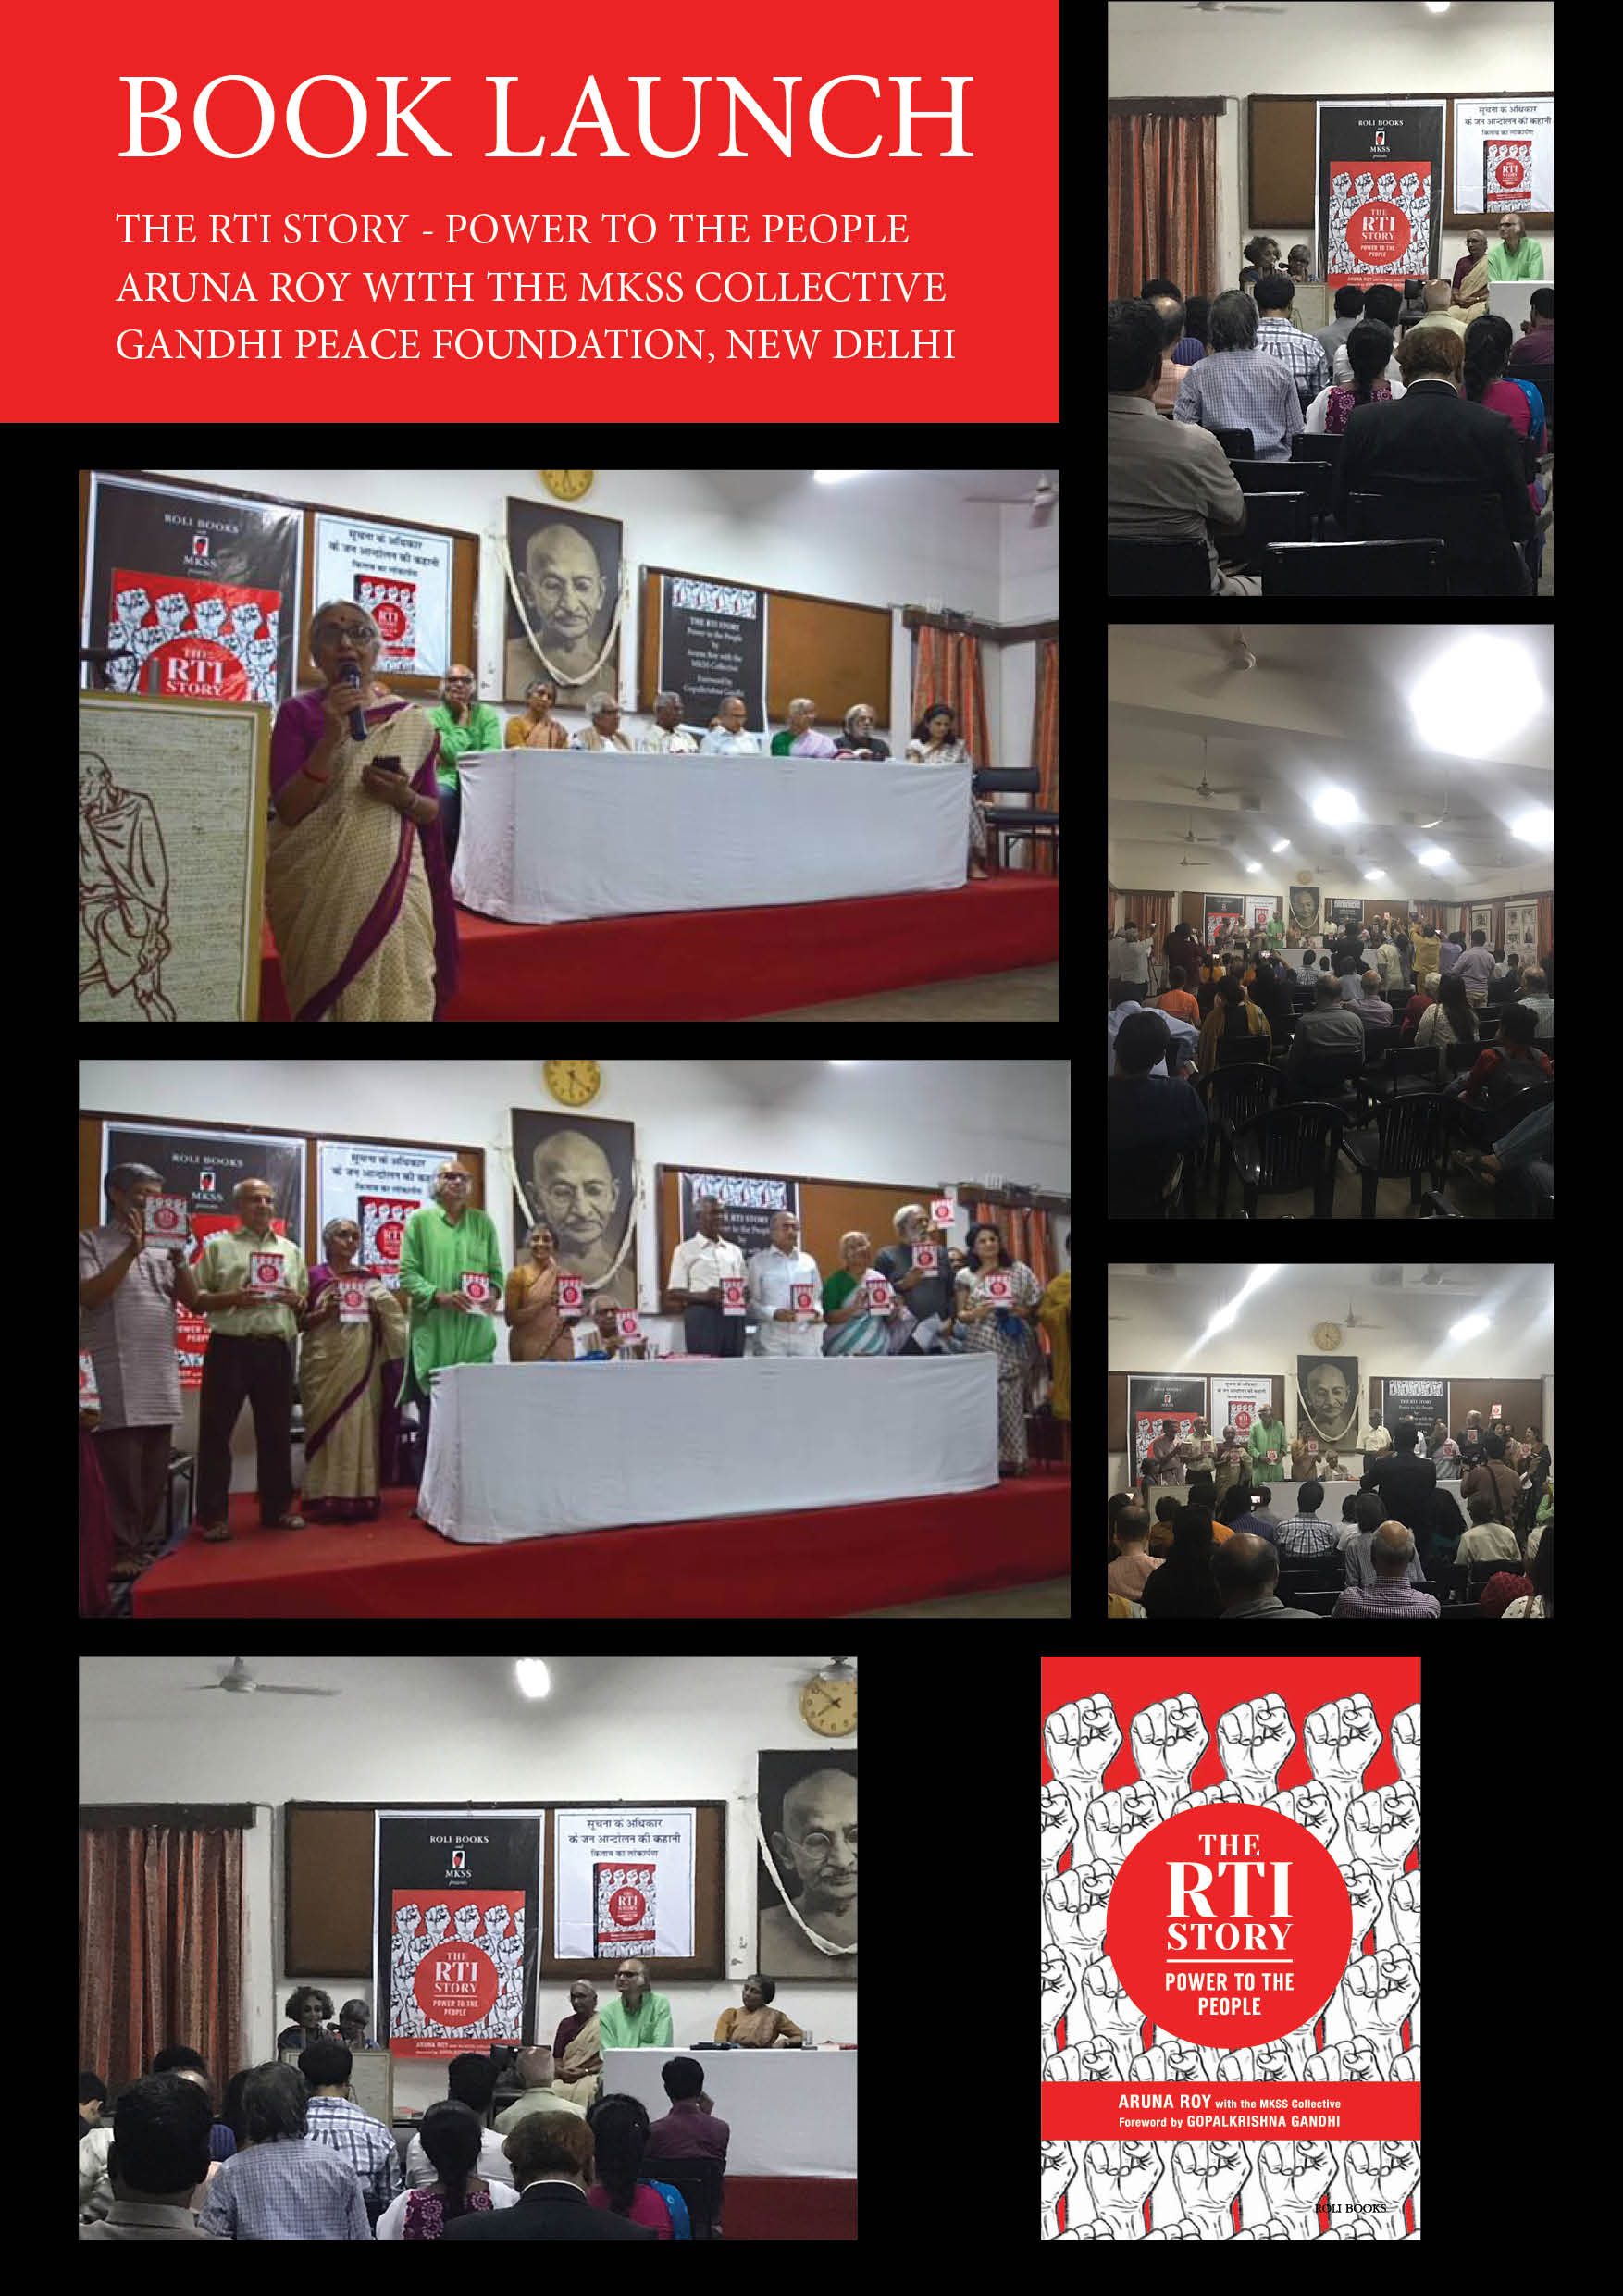 Book Launch - The RTI Story<br><span>Gandhi Peace Foundation, New Delhi</span>